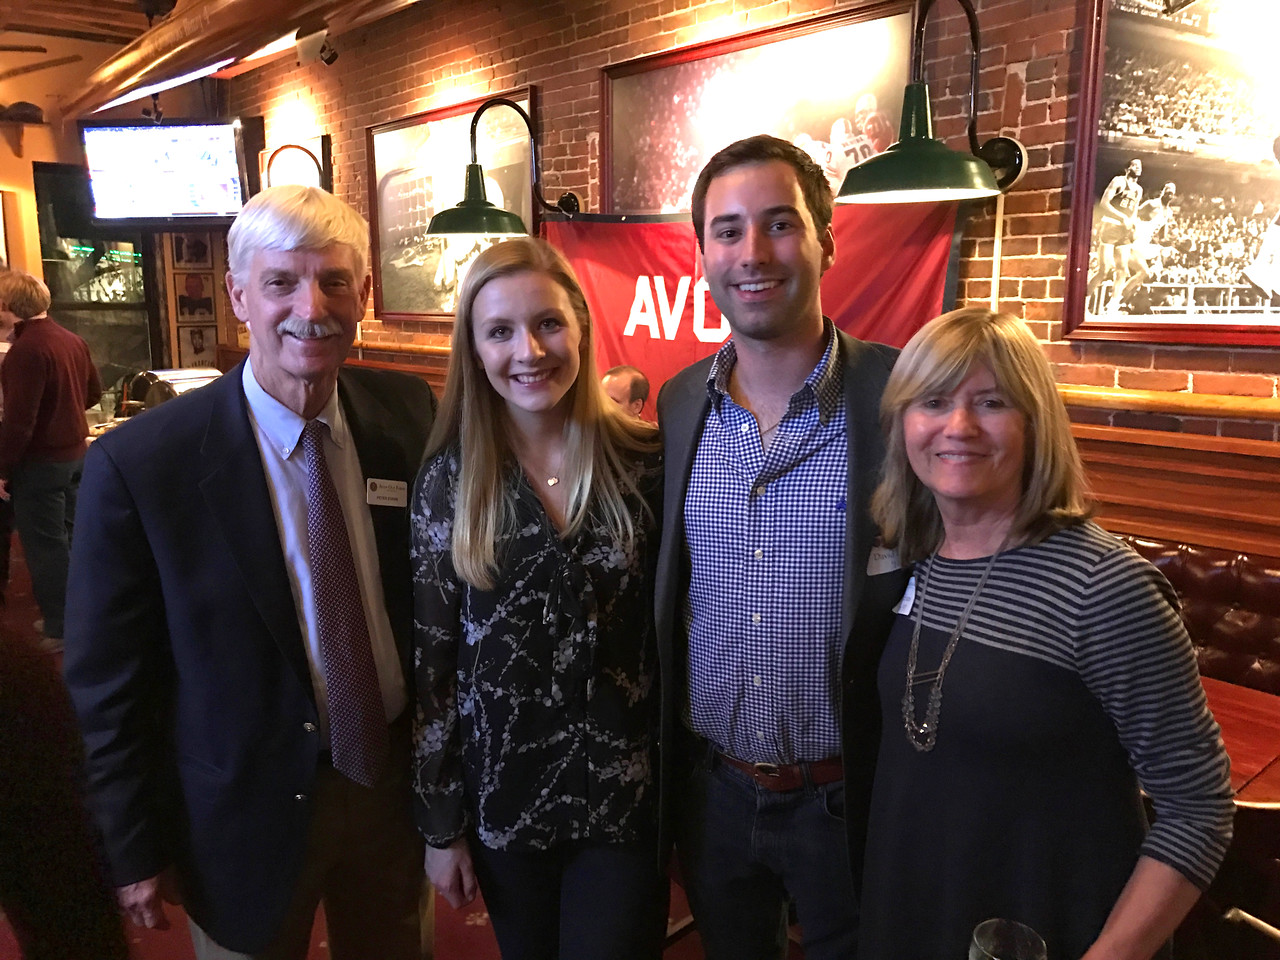 Peter Evans P'98, Jenna Raleigh, Dave Barros '11, and Sue Evans P'98